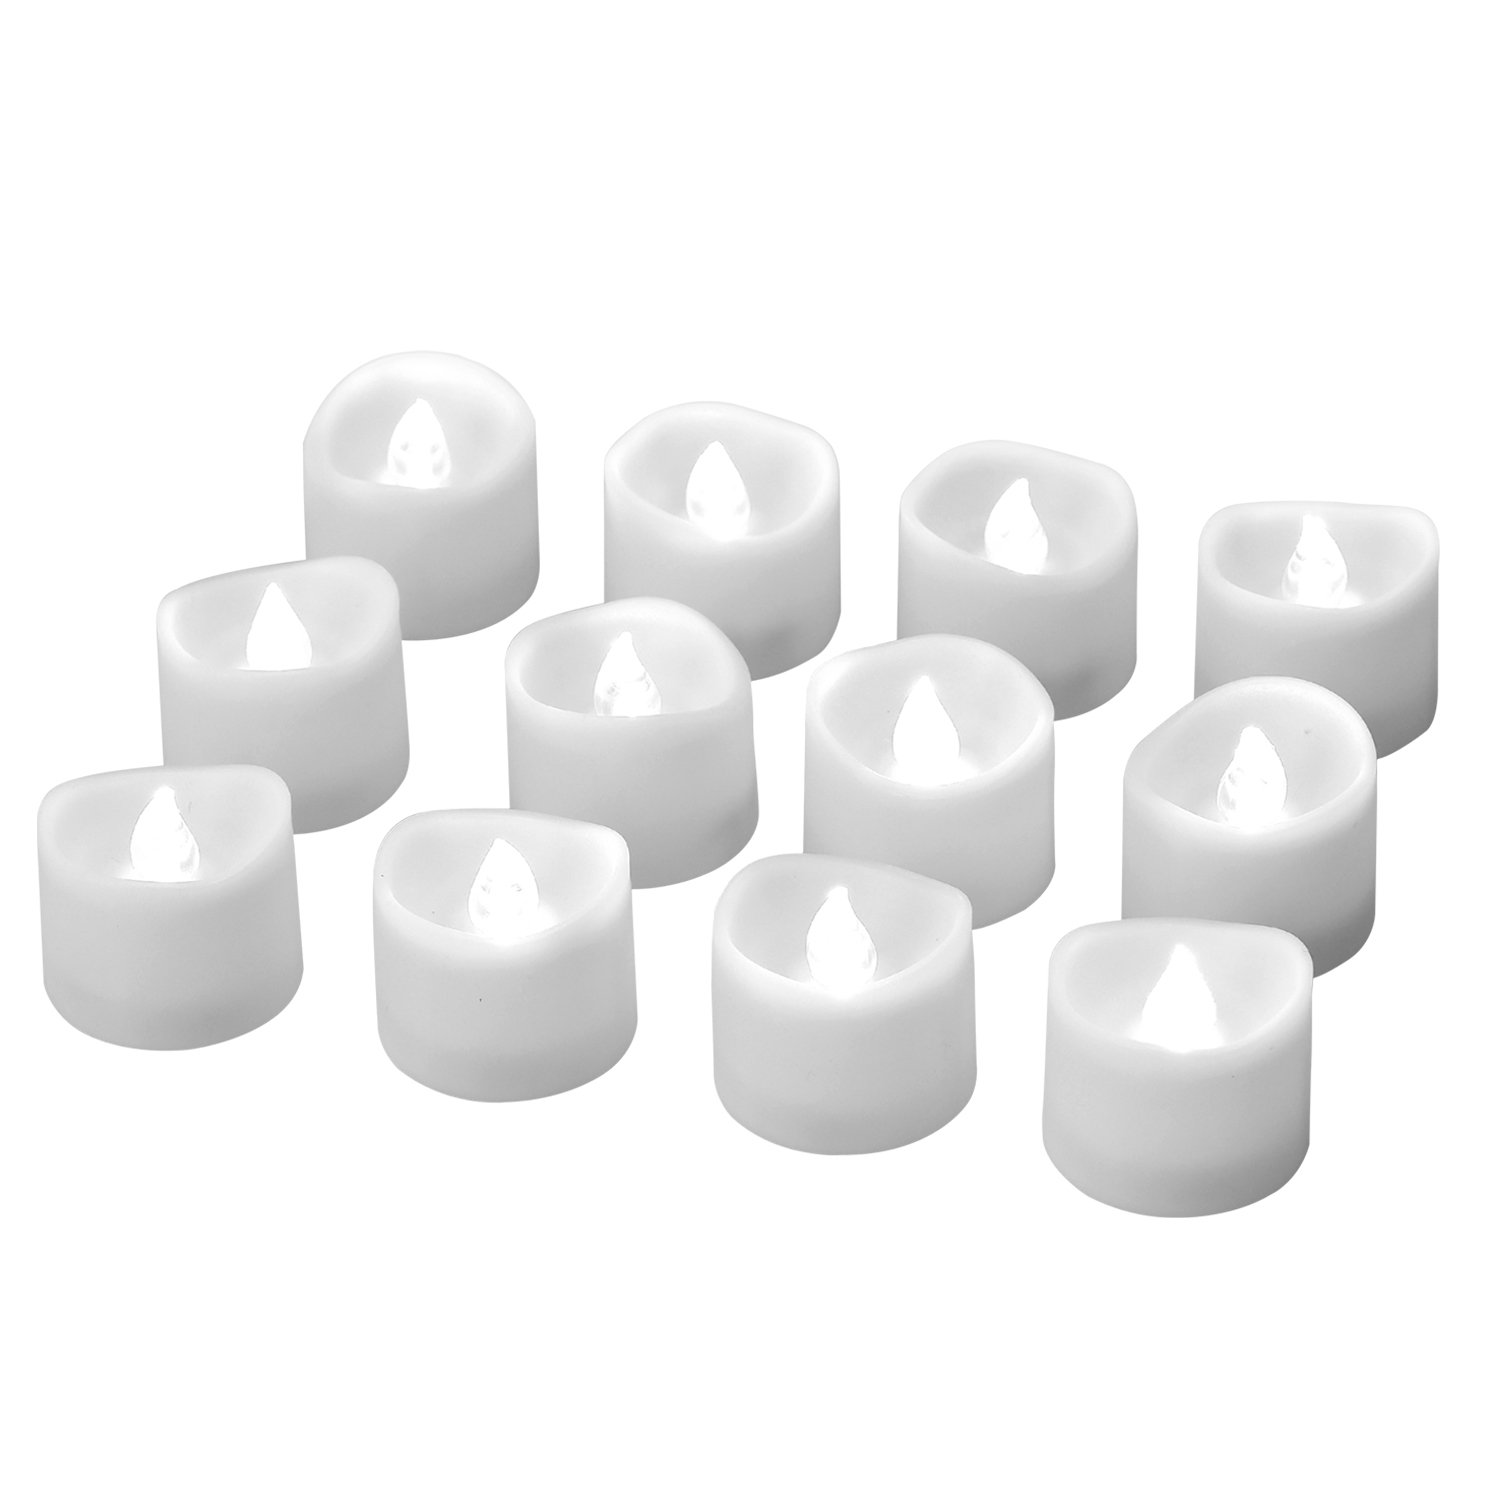 eLander LED Tea Lights Flameless Candle with Timer 6 Hours on and 18 Hours off 1.4 x 1.3 Inch Cool White 12 Pack